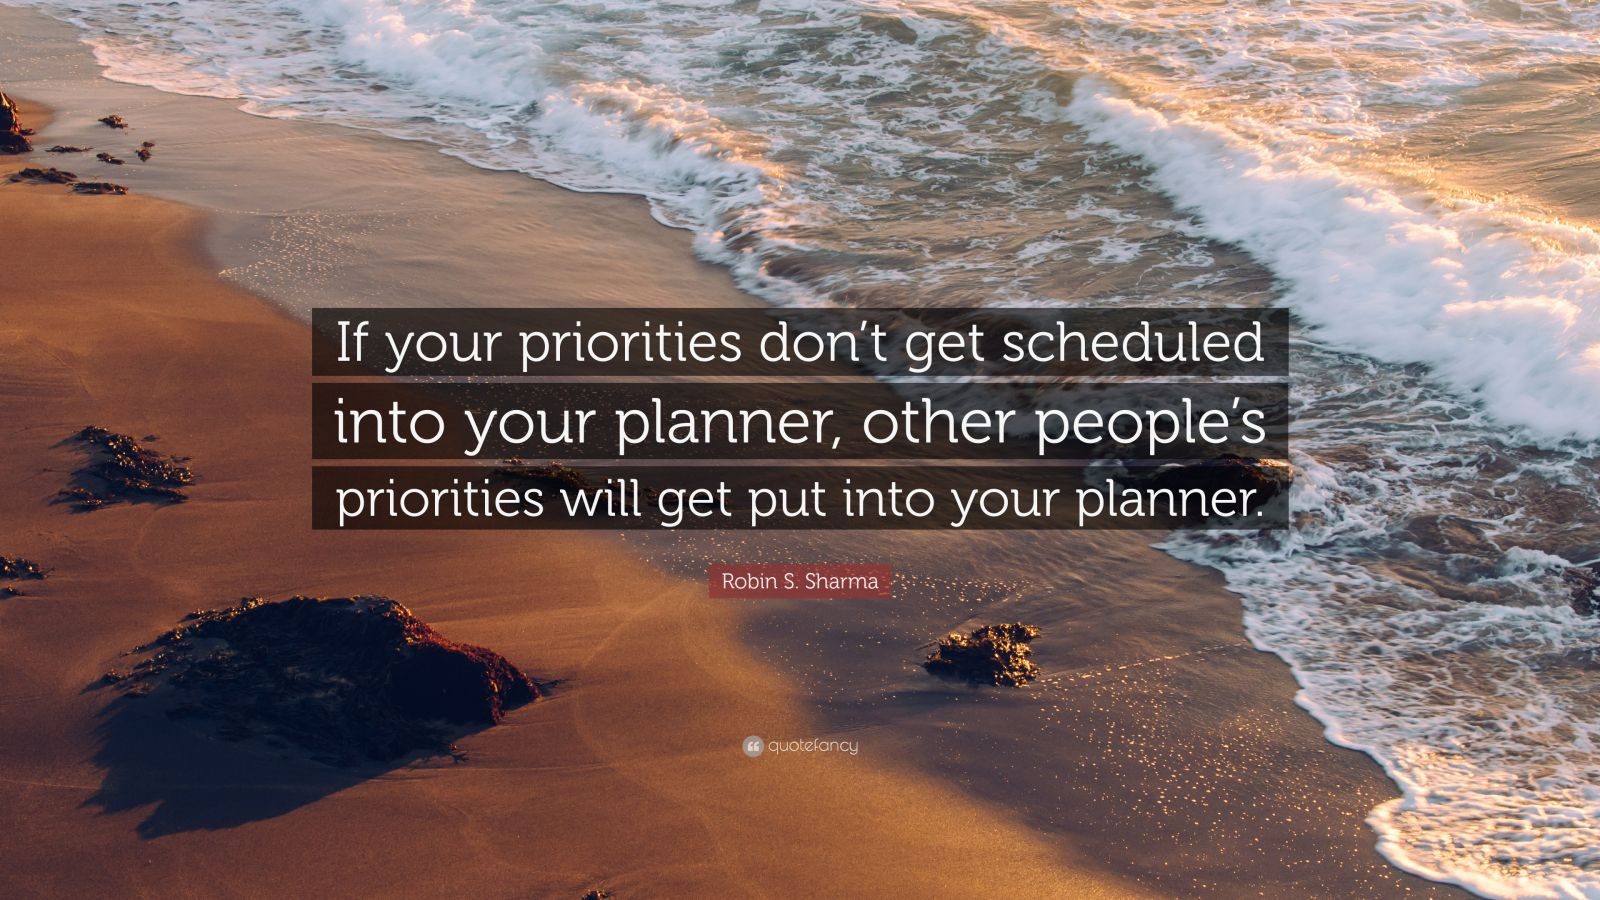 """Robin S. Sharma Quote: """"If your priorities don't get scheduled into your planner, other people's priorities will get put into your planner."""""""